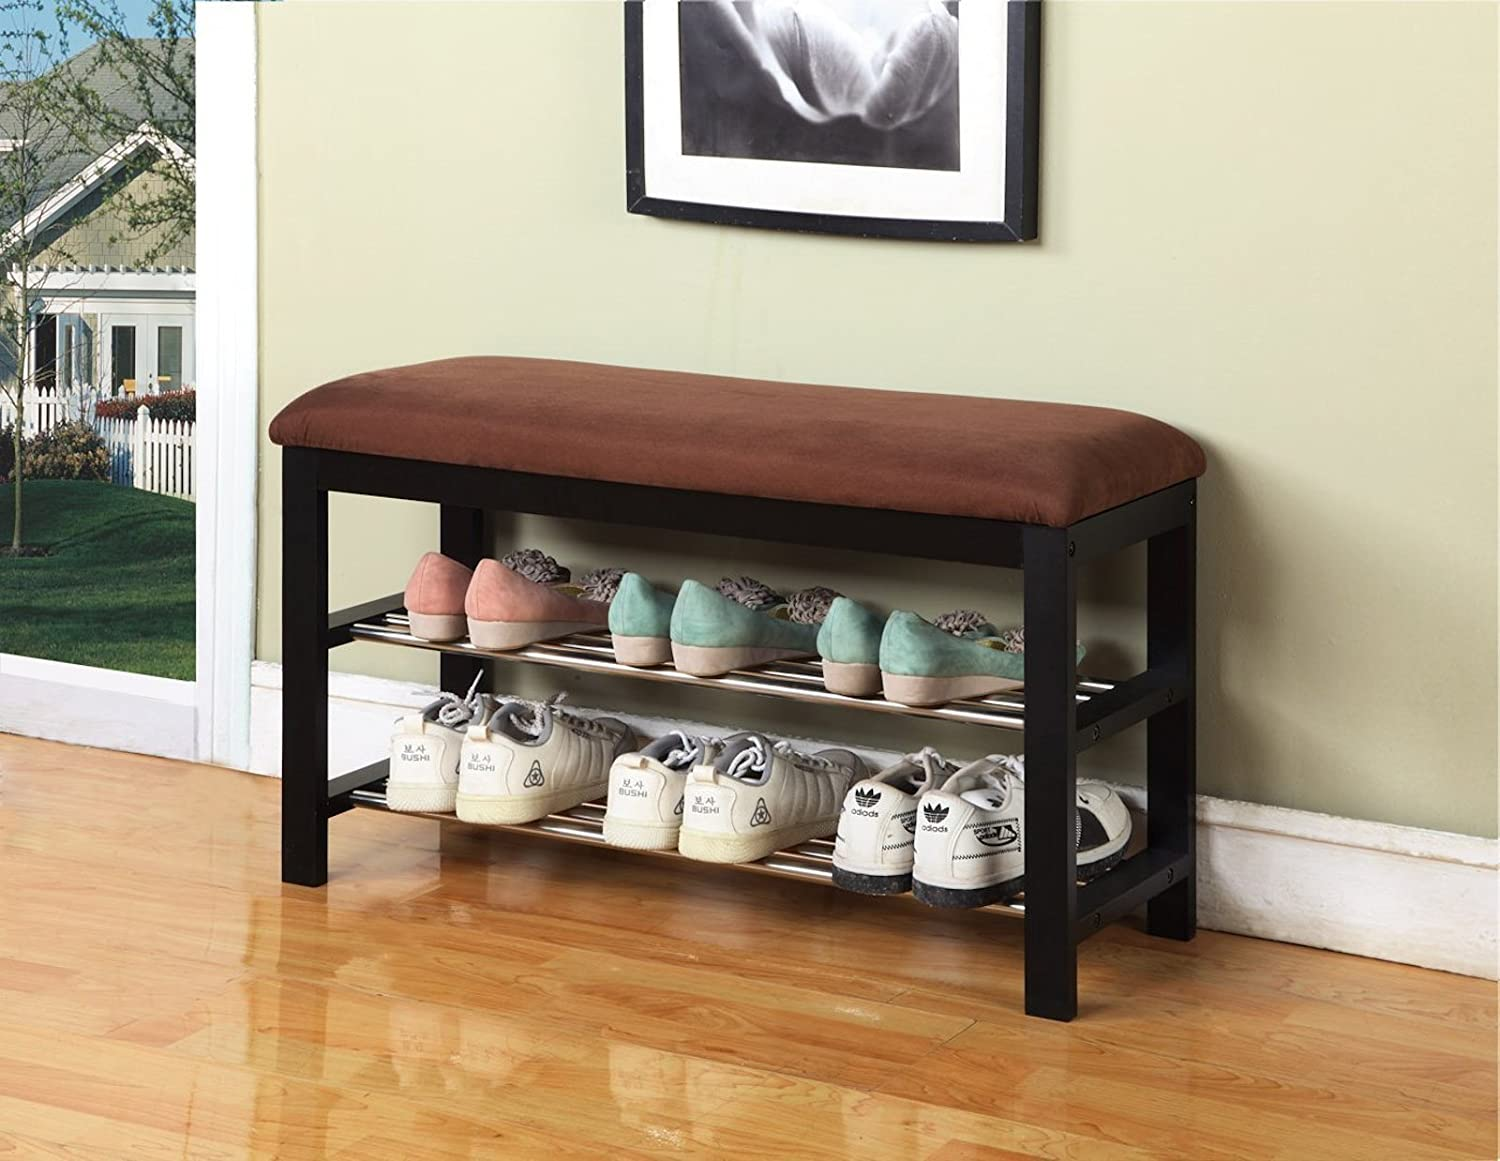 Amazon.com Legacy Decor Metal Two Tier Shoe Rack Bench with Black Bonded Leather Seat Home u0026 Kitchen & Amazon.com: Legacy Decor Metal Two Tier Shoe Rack Bench with Black ...